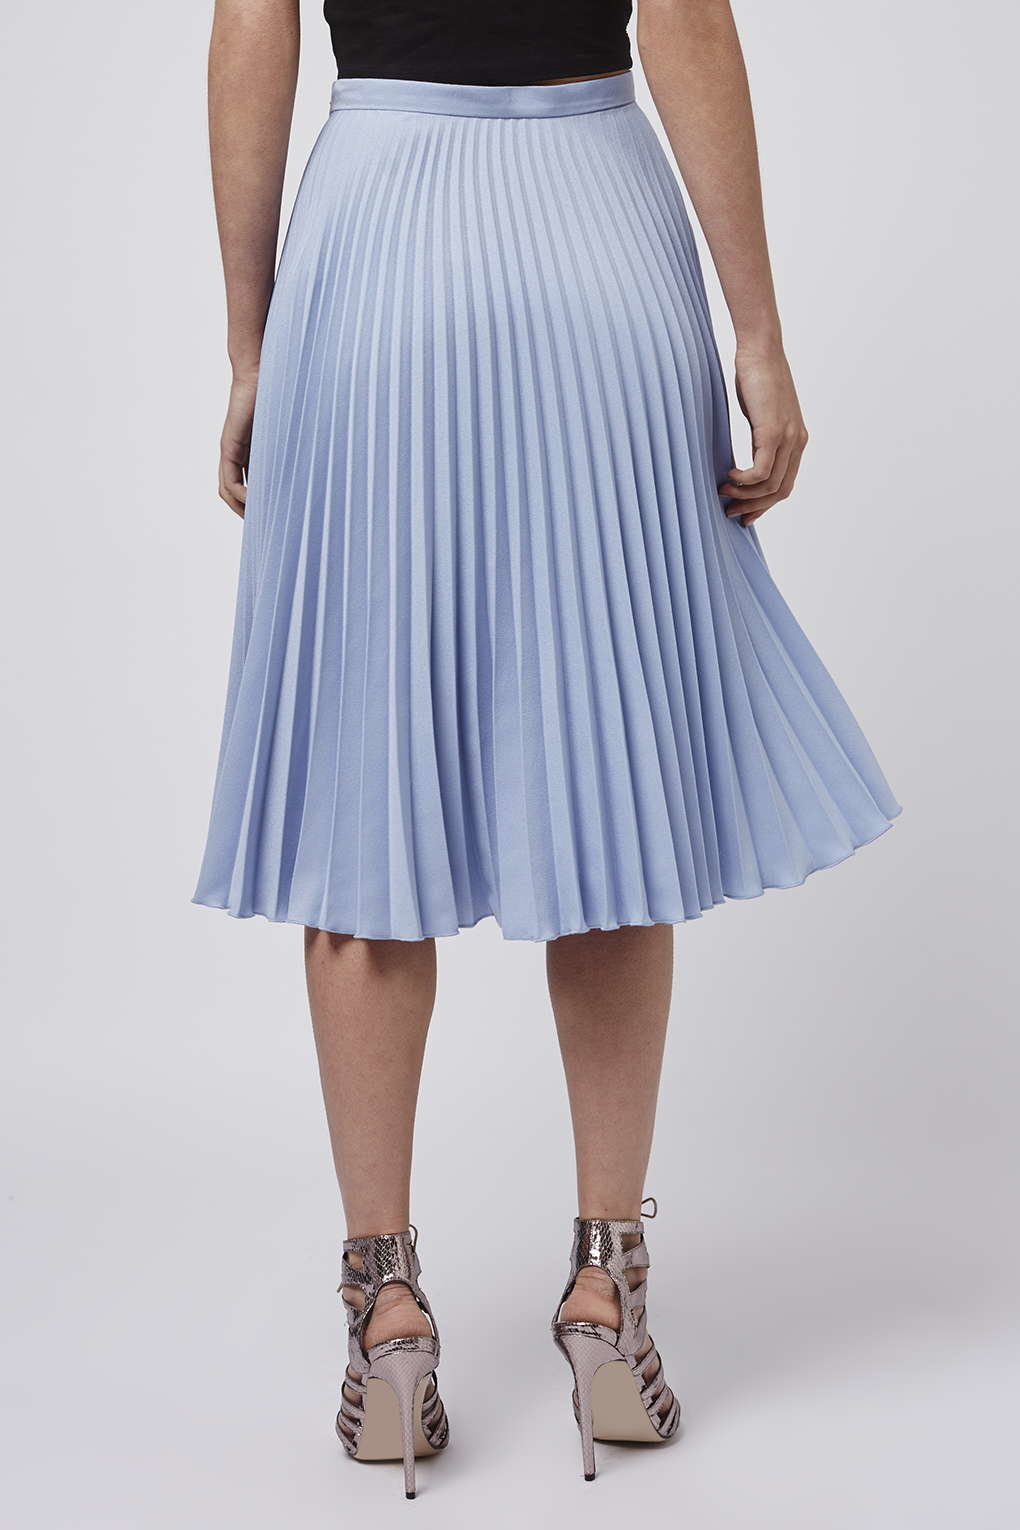 Topshop Petite Pleated Midi Skirt in Blue | Lyst